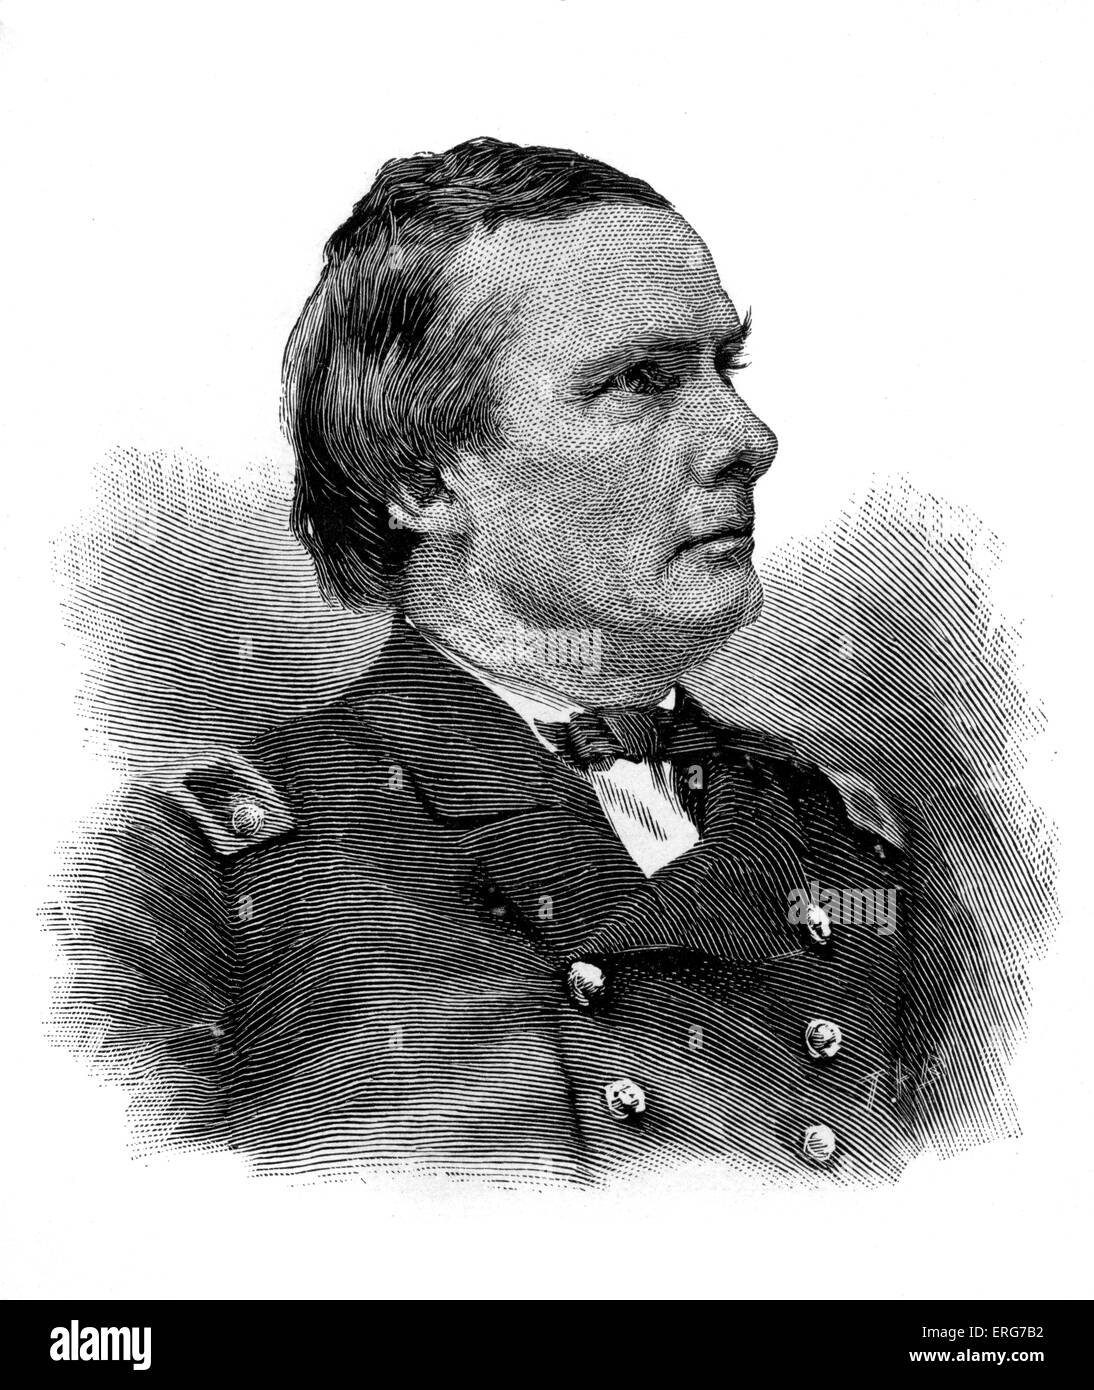 Rear Admiral James Edward Jouett, after a photograph. United States Navy officer, 7 February 1826 – 30 September - Stock Image